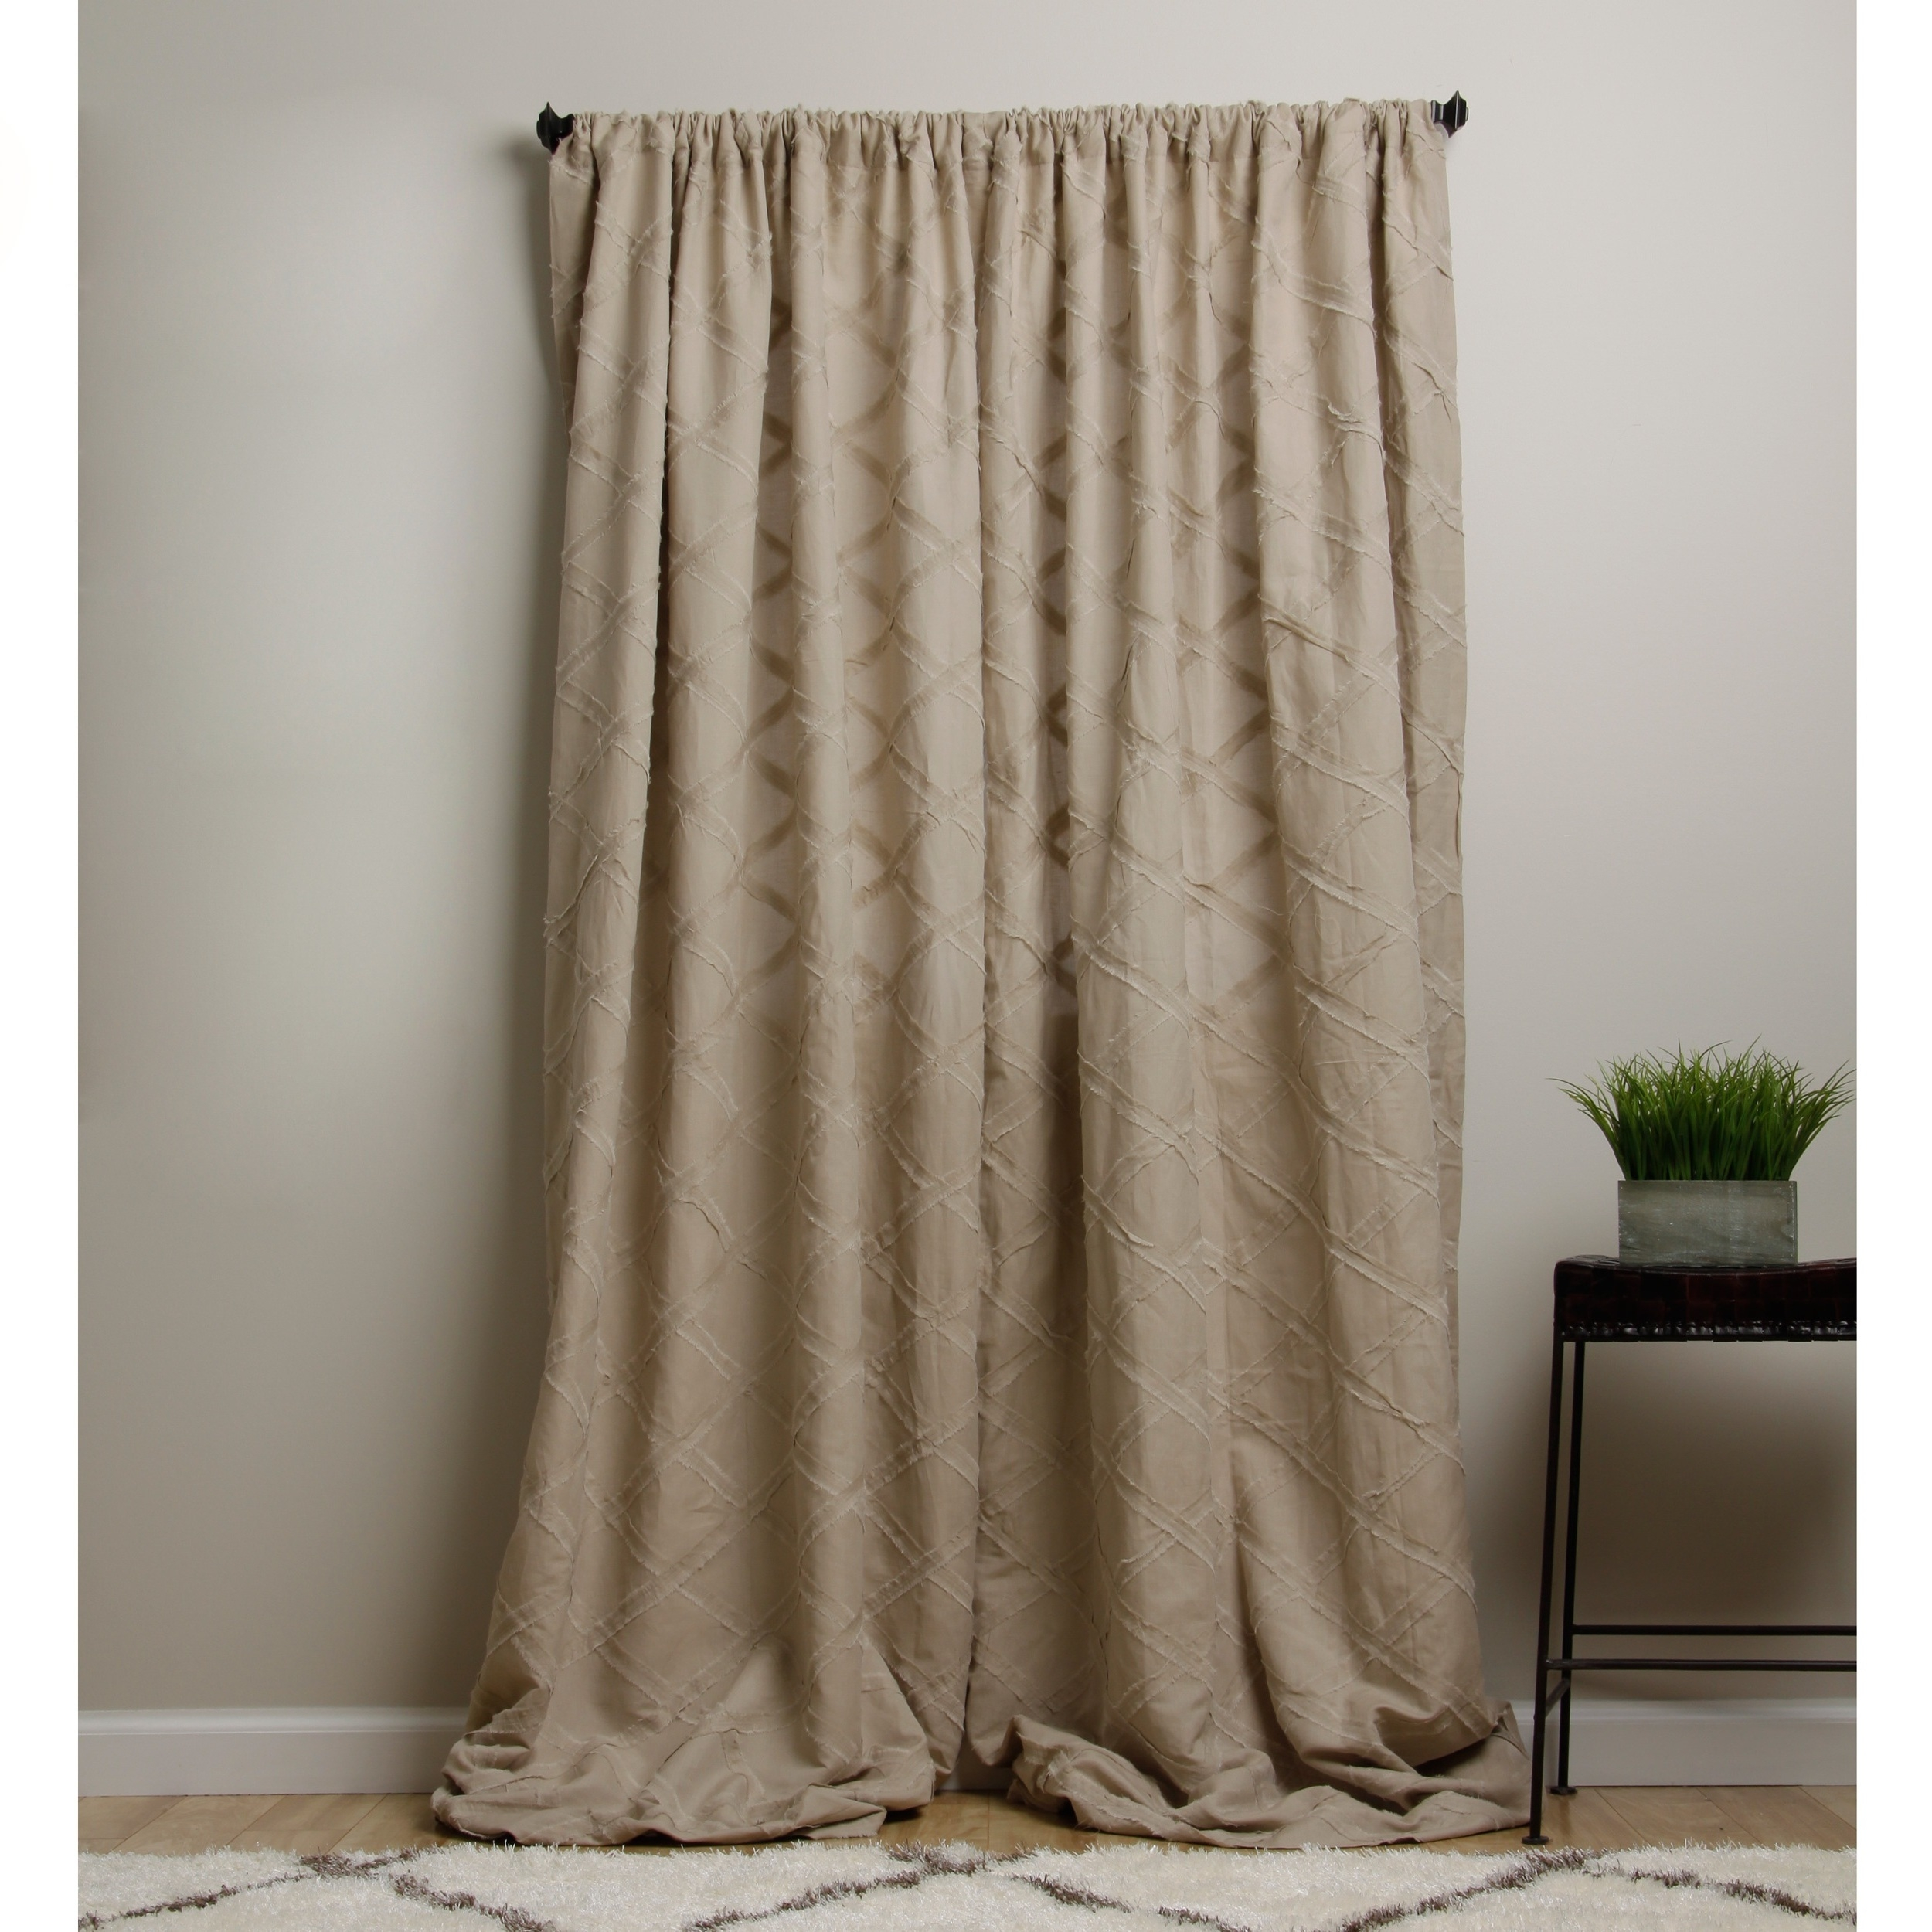 Curtains Exciting 96 Inch Curtains For Home Decoration Ideas Intended For 63 Inches Long Curtains (Image 10 of 25)